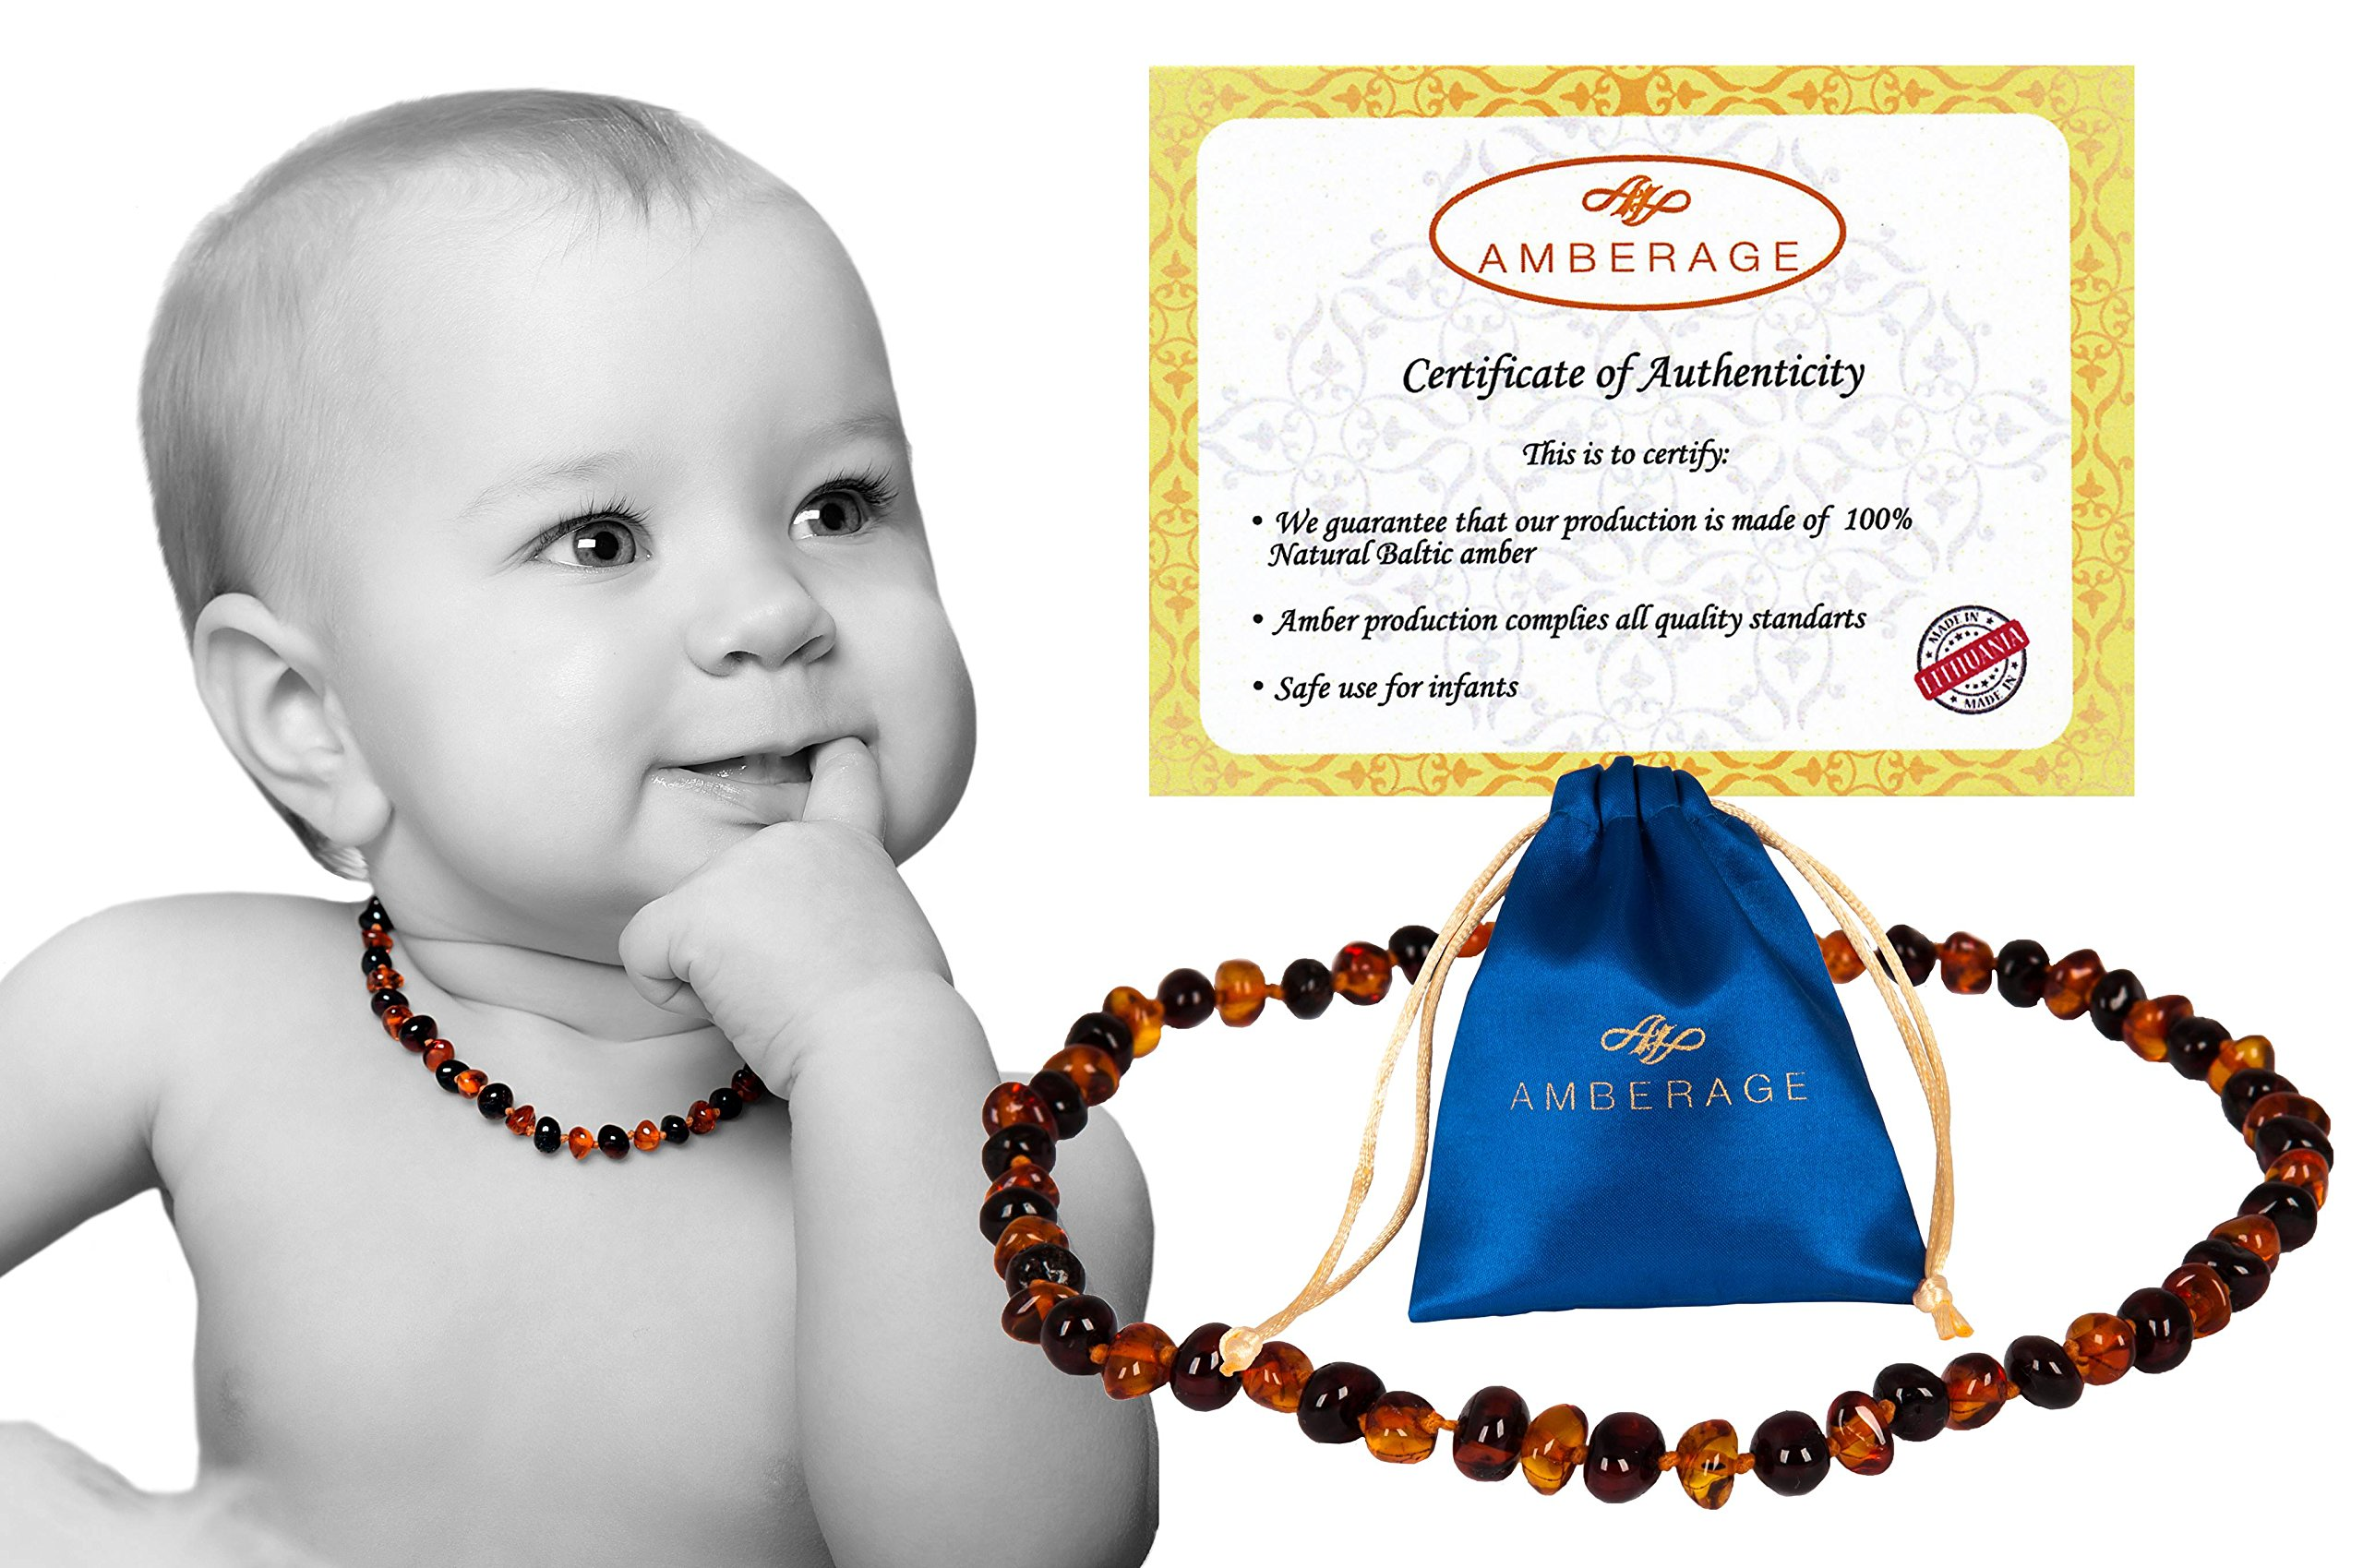 Certified Amber Beads 50/% Higher in Value and Effectiveness Extra Safe Teething Necklace with Teething Pain /& Drooling Reduce Properties//HNY.P-BN29.5 Baltic Secret BN29.5-HNY.P-BN-US03.22 Amber Teething Necklace for Babies